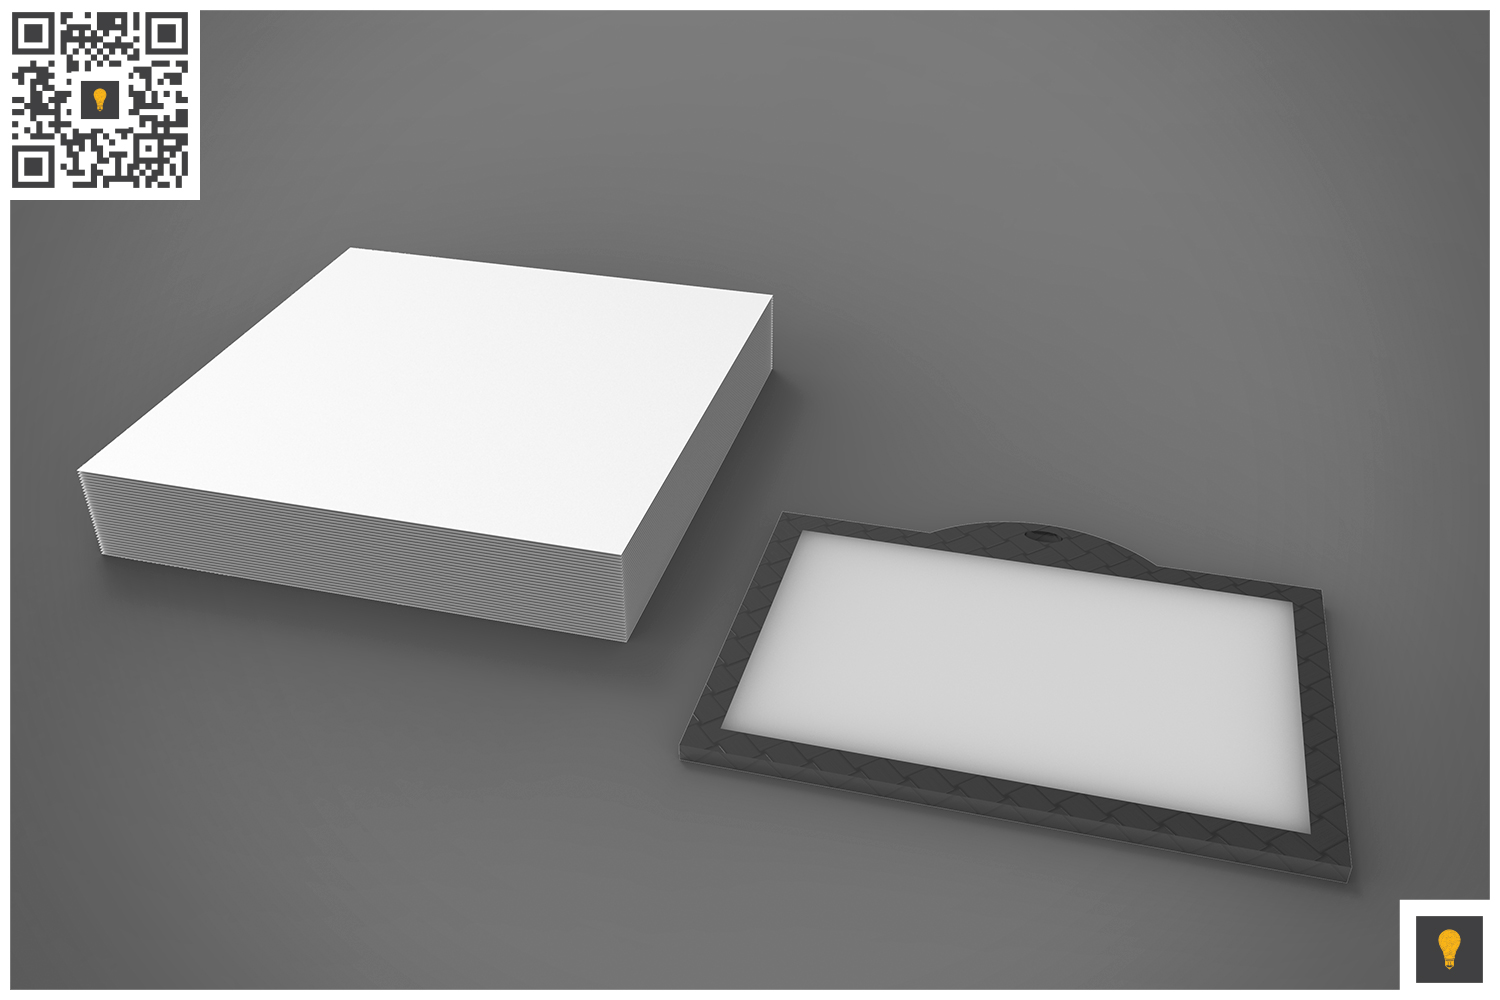 Branding Stationary 3D Render example image 16